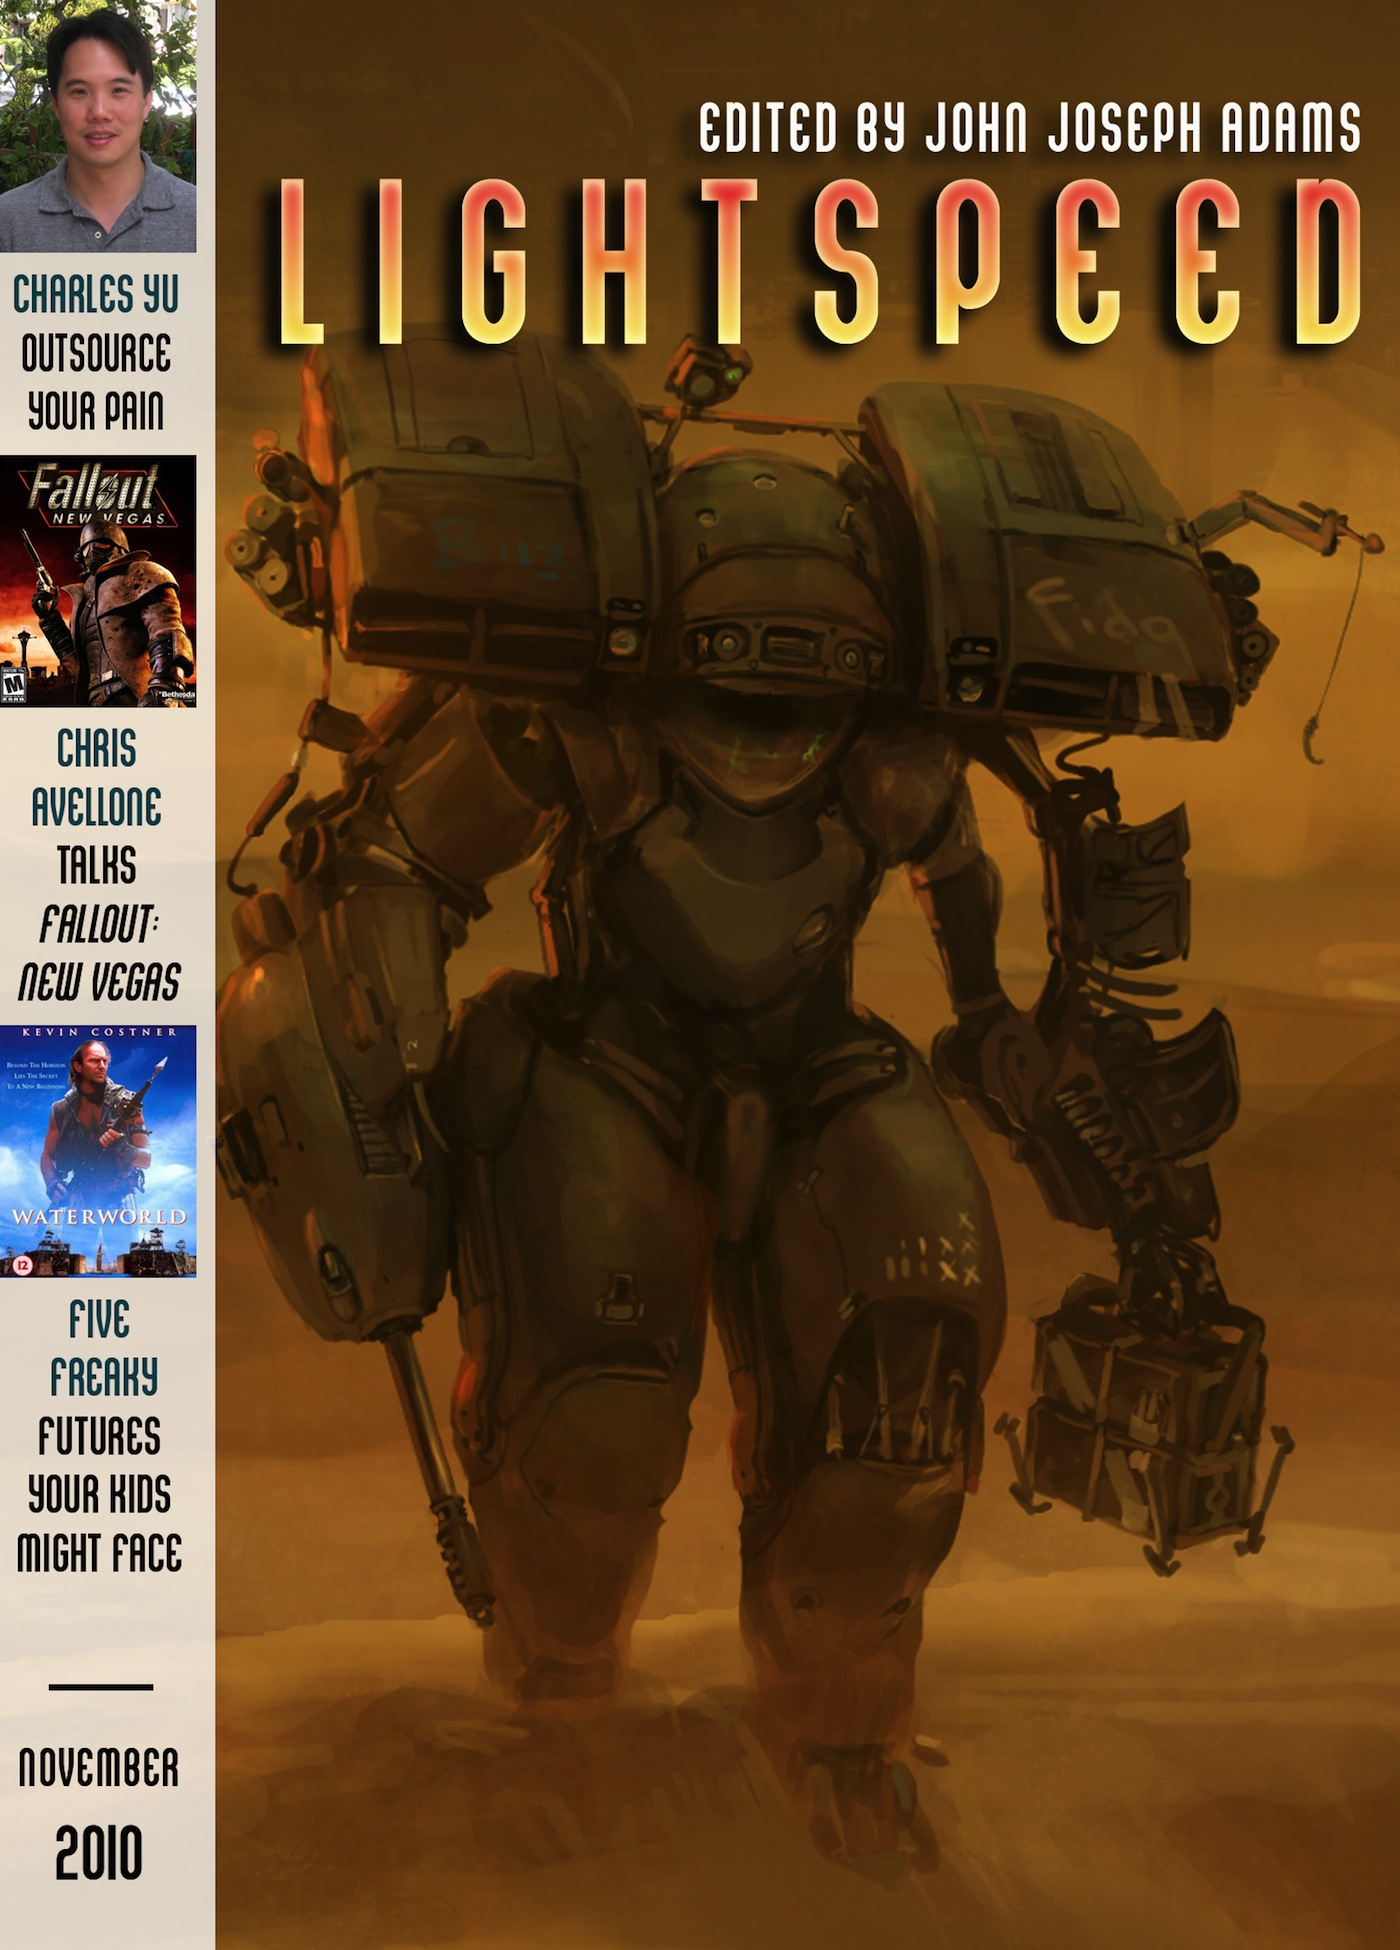 Lightspeed Magazine, November 2010